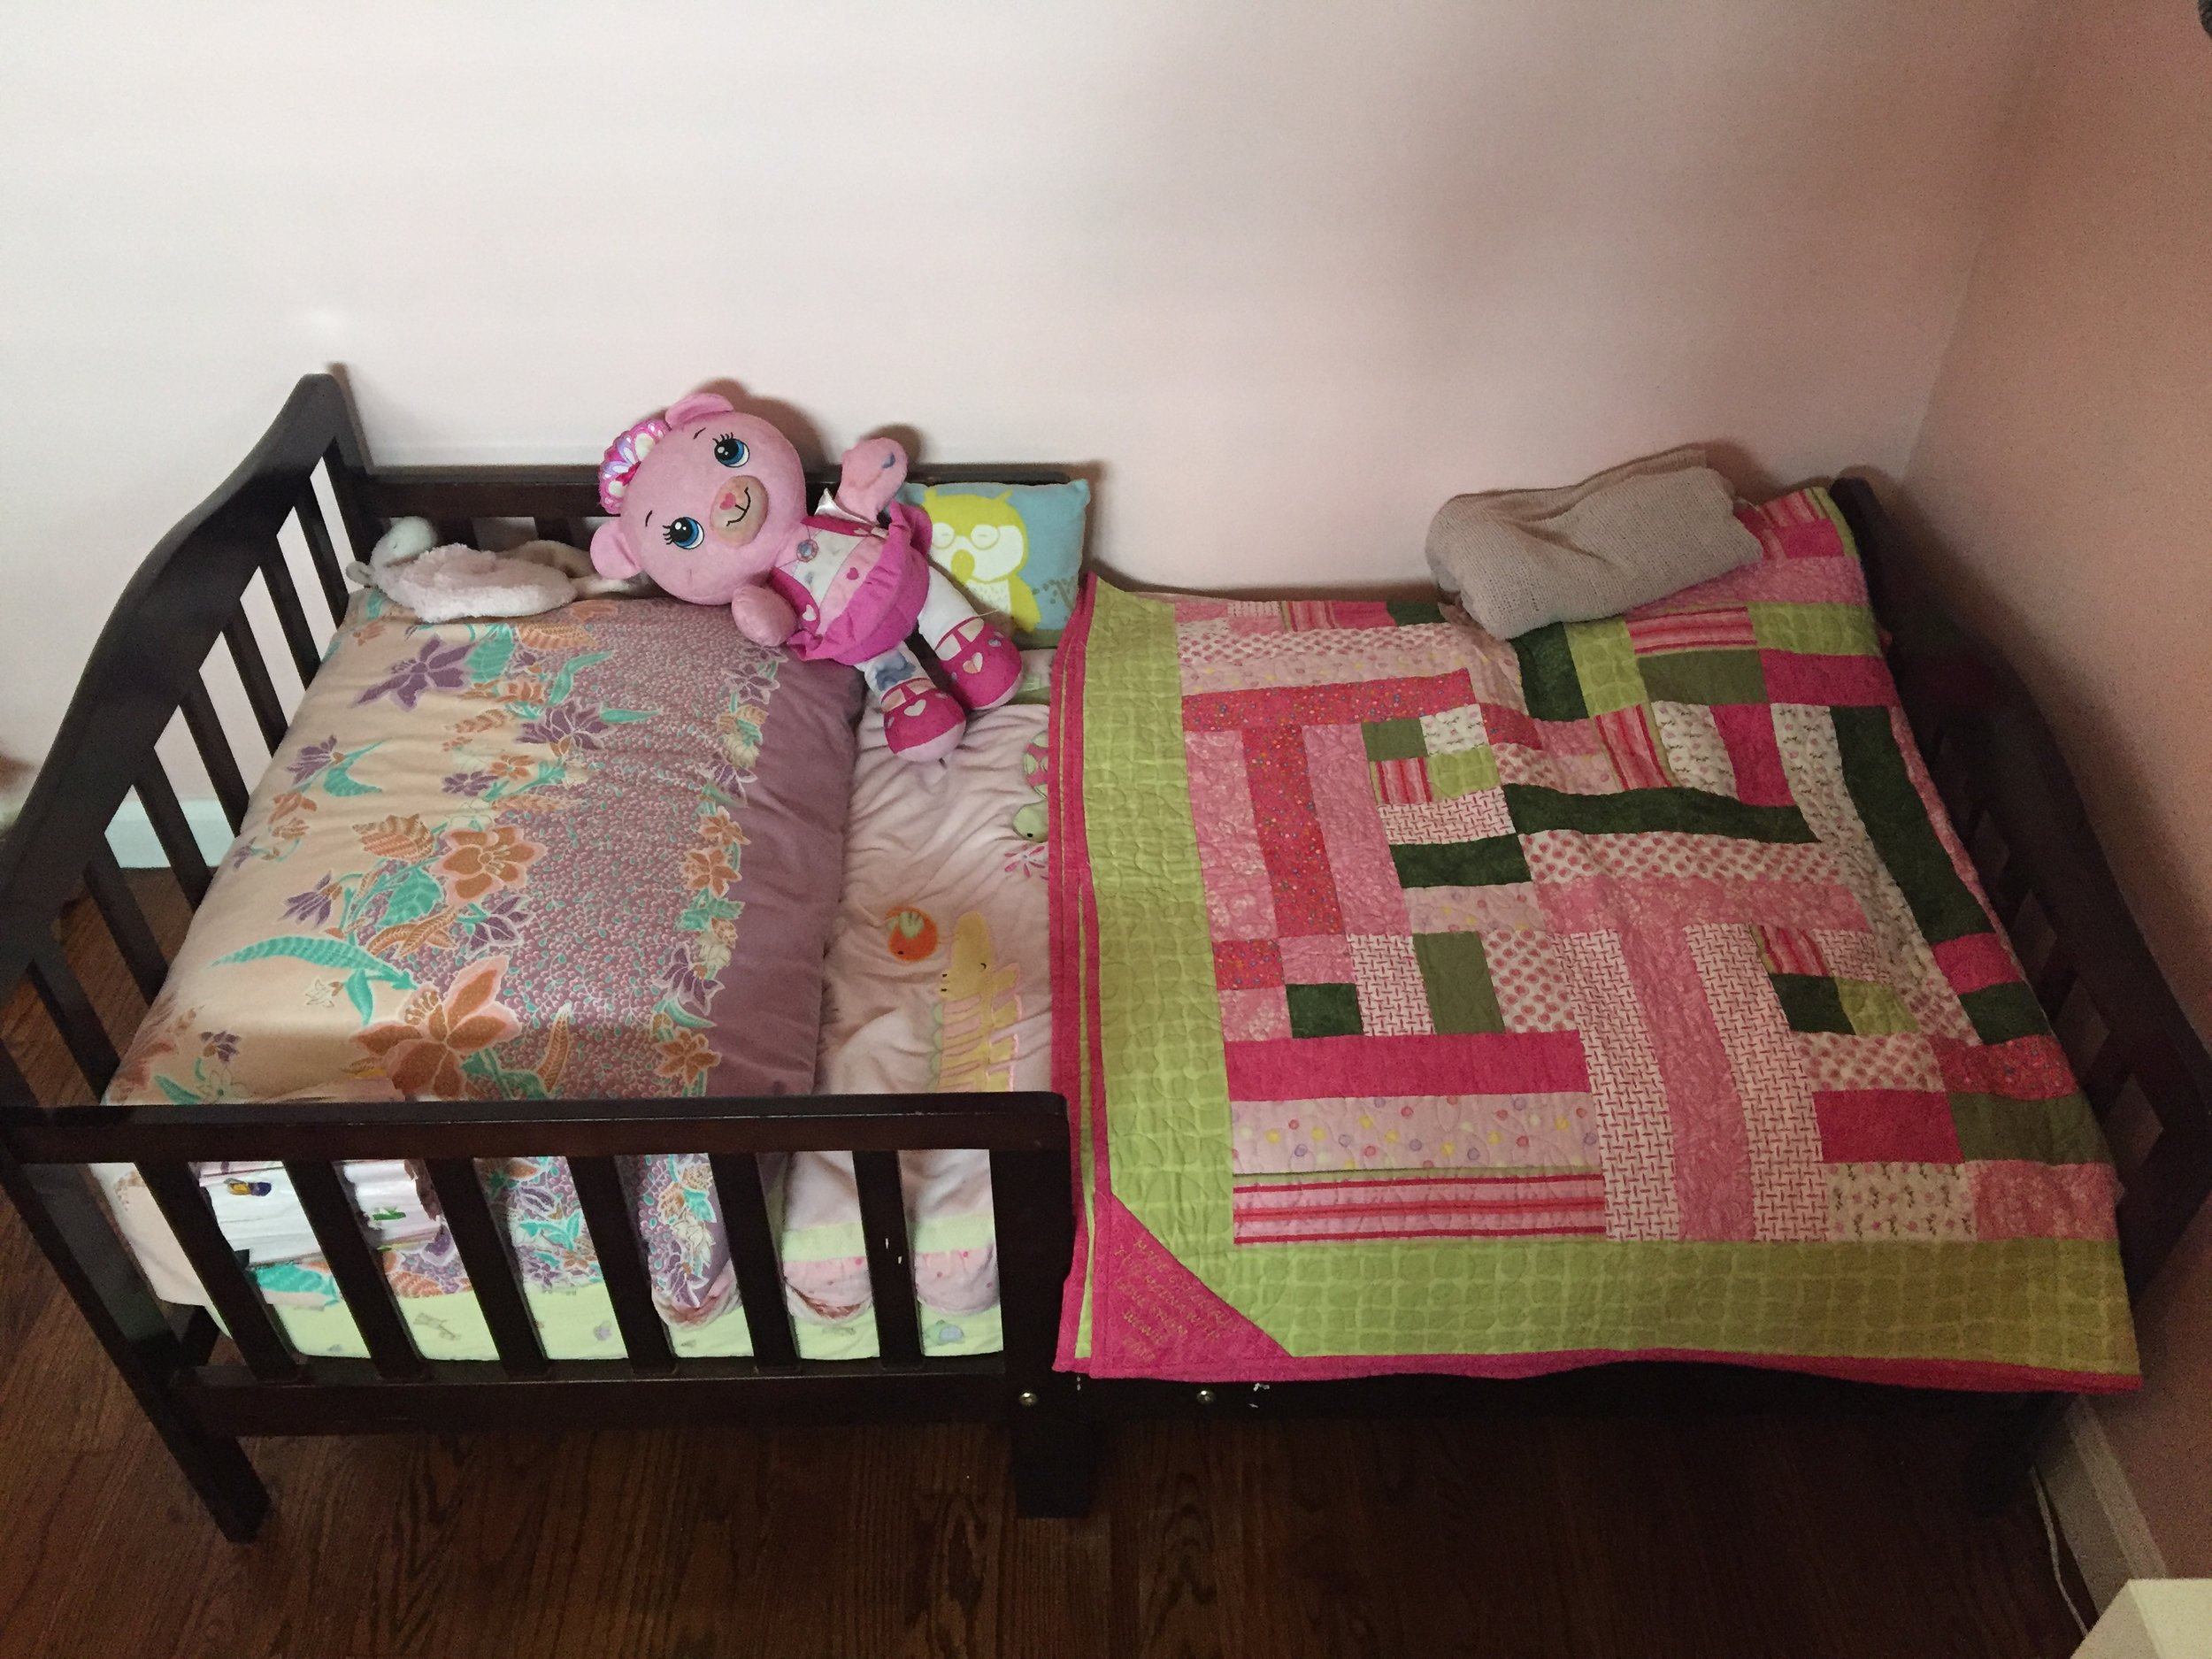 The toddler bed is just the perfect size for Meena, easy to get in and out of.  Meena likes to sleep facing the mermaid because she doesn't want to look at the closet.  Bed: Craigslist; Quilt: made by my MIL for Meena.